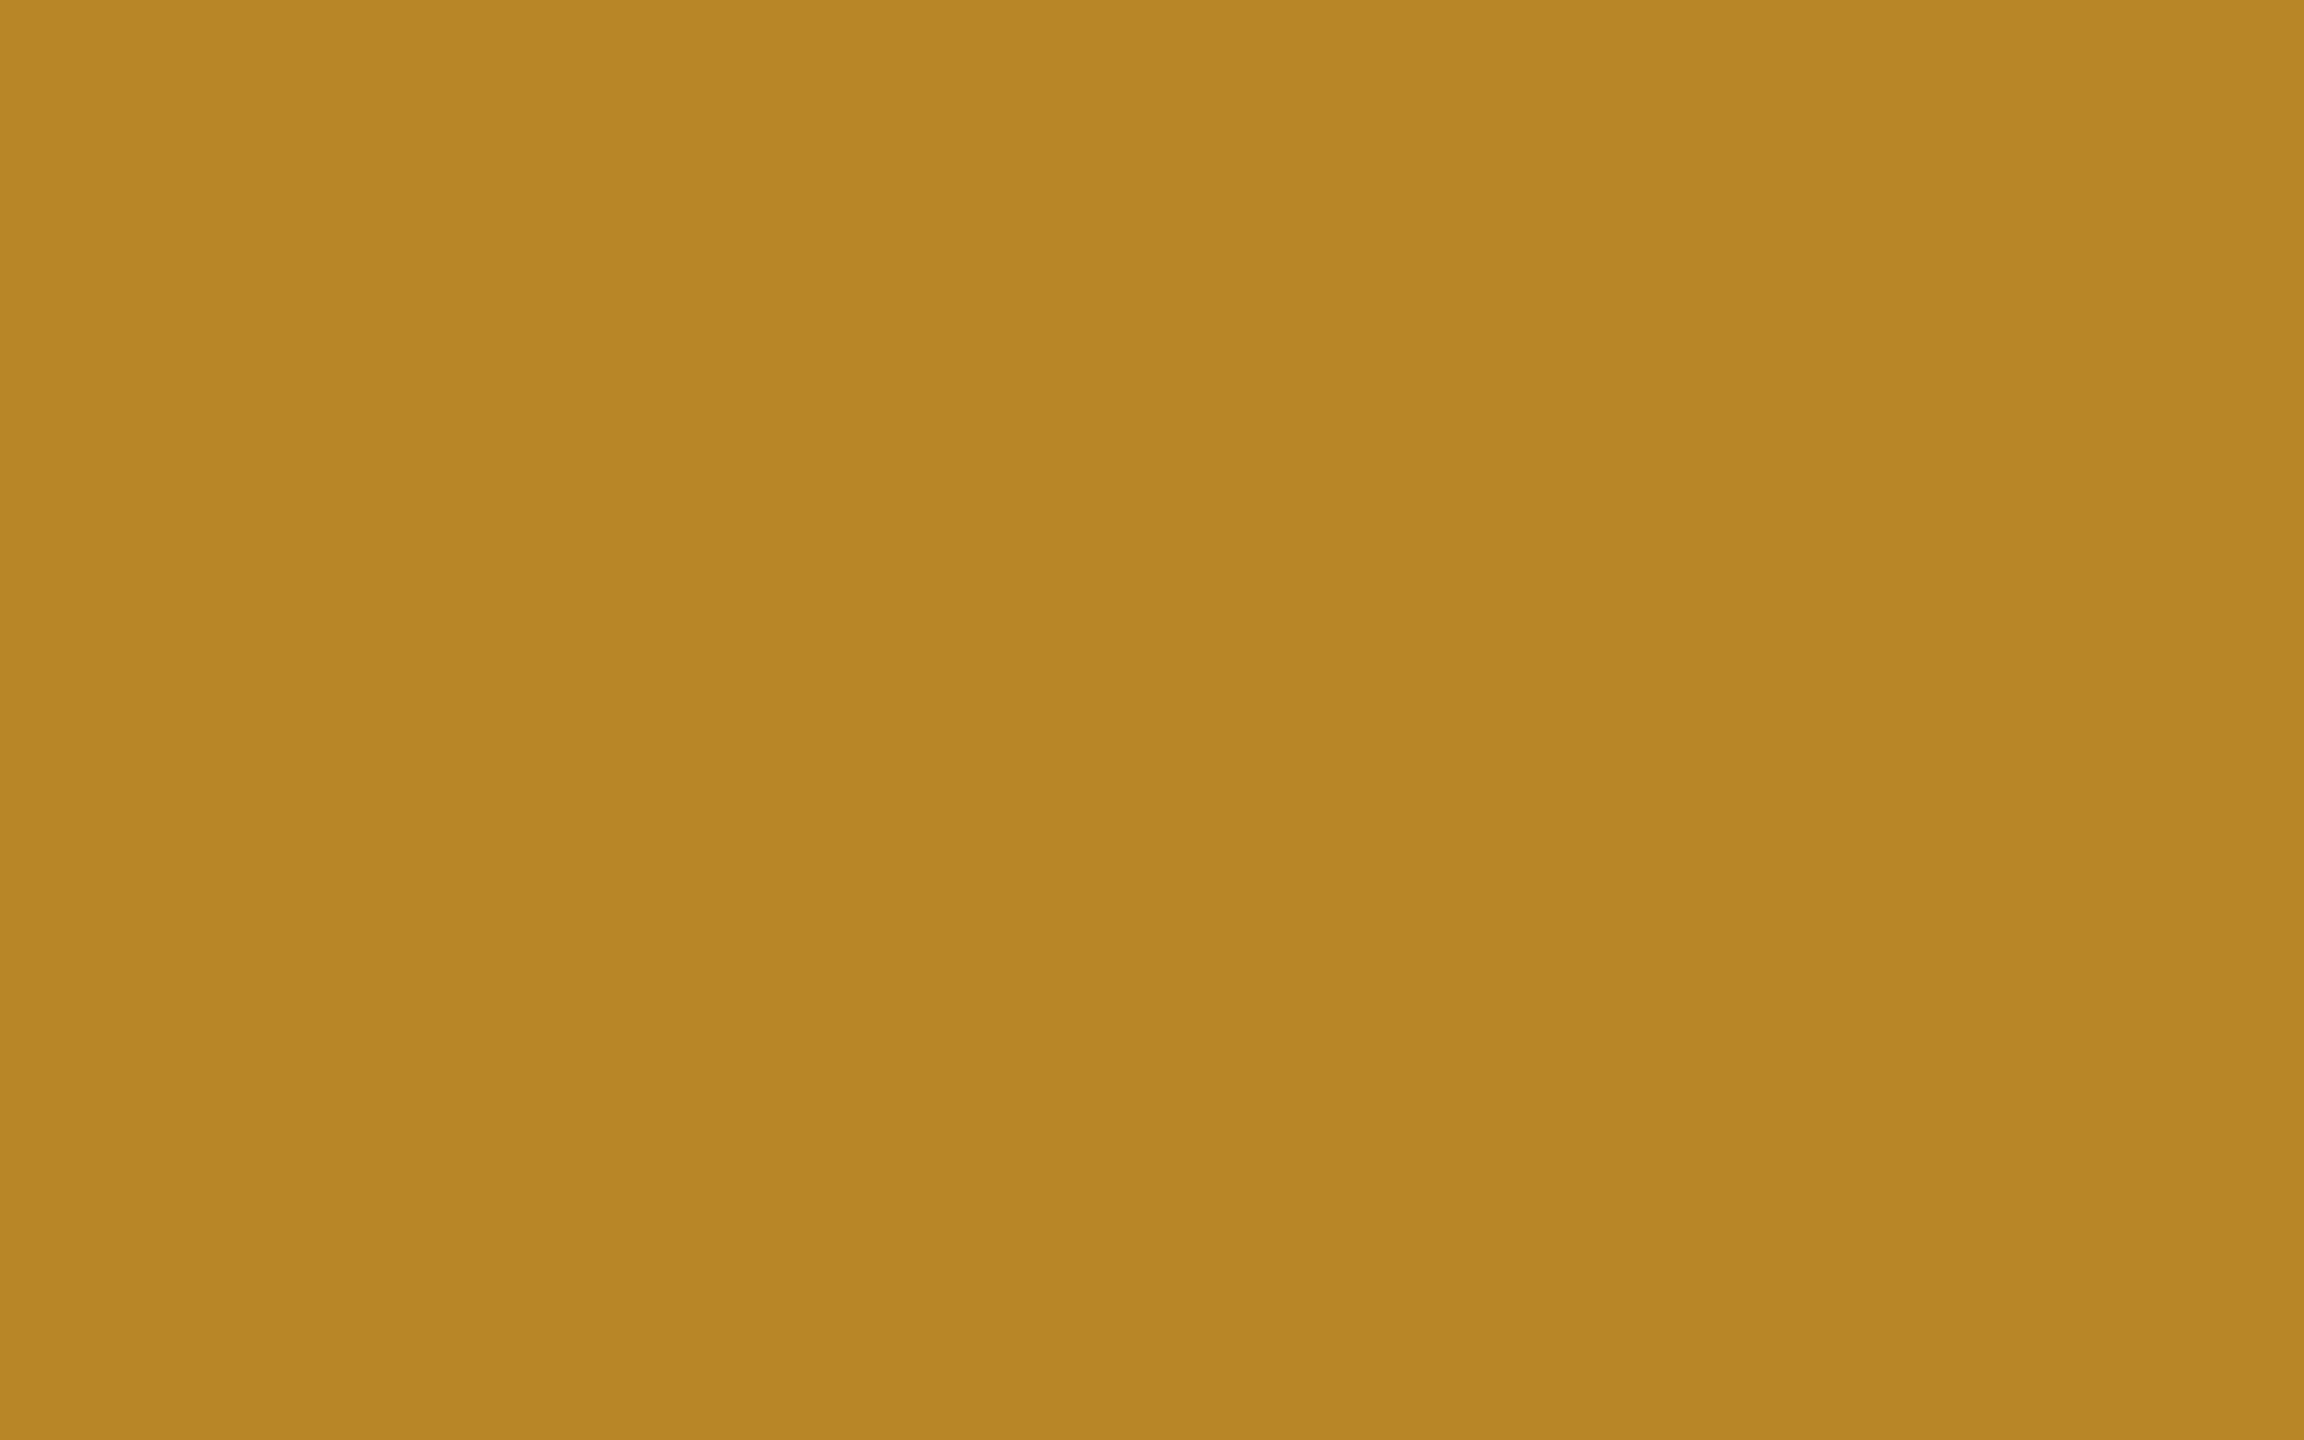 2304x1440 University Of California Gold Solid Color Background